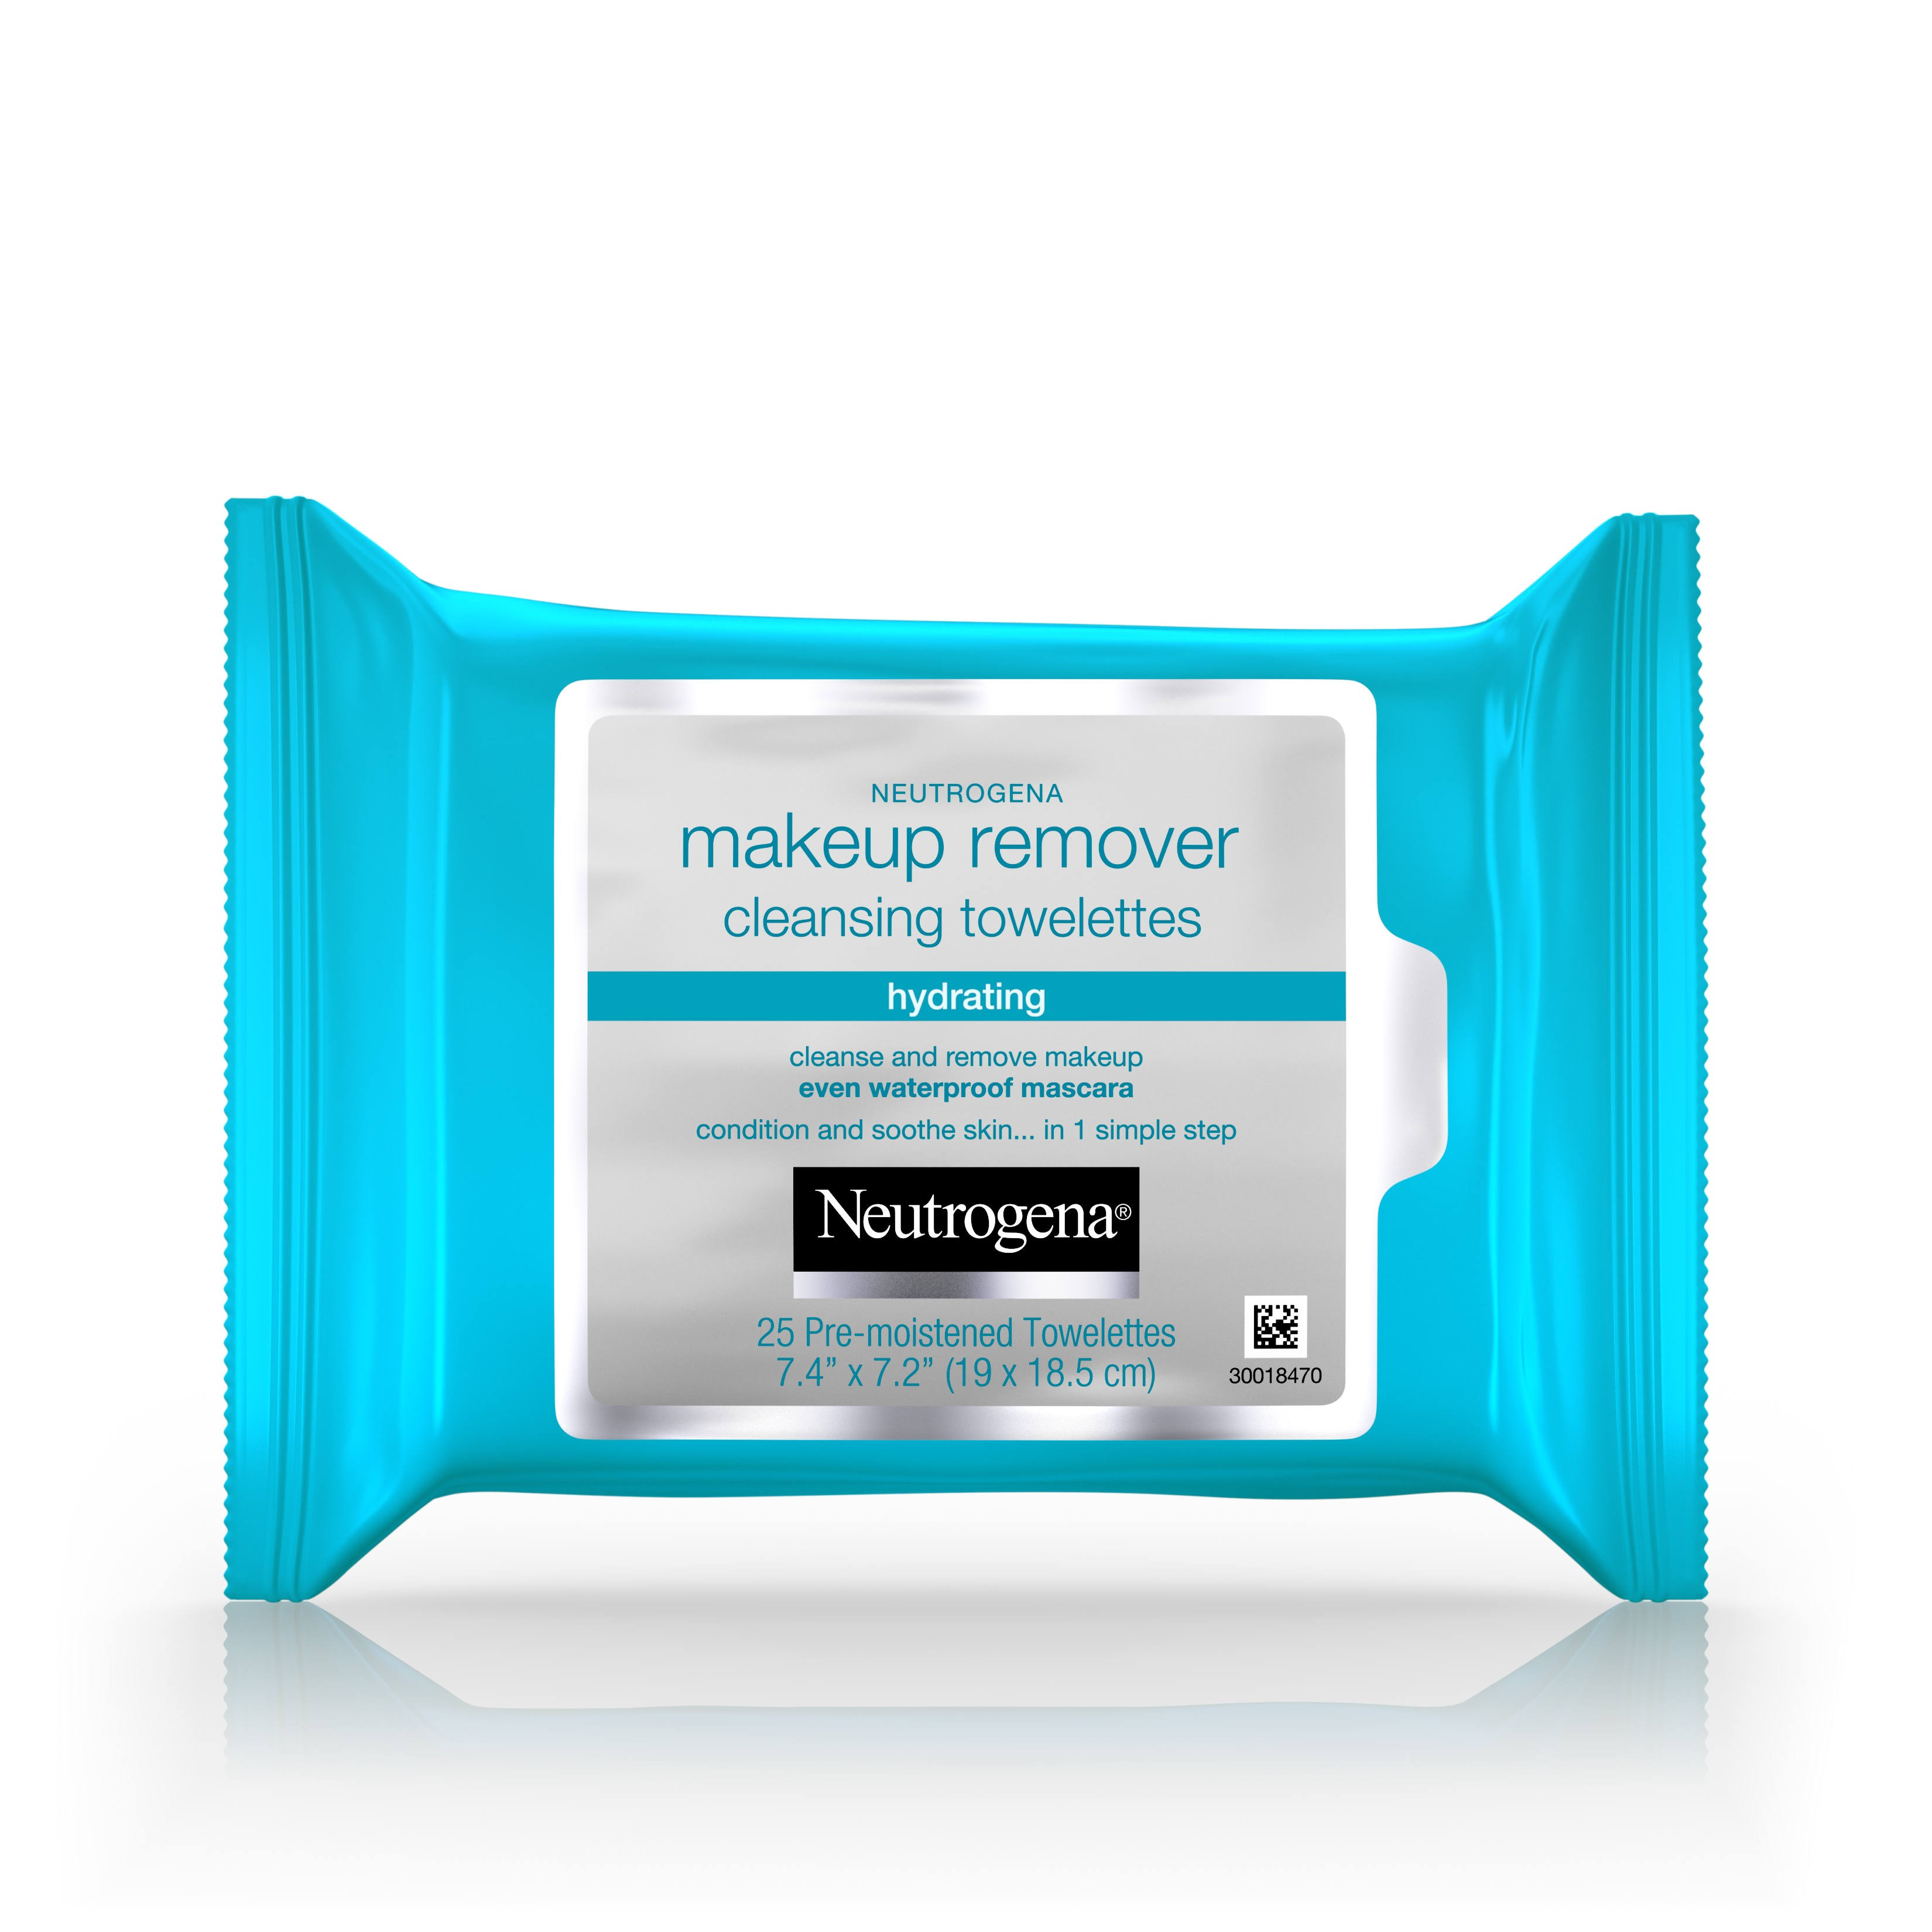 Neutrogena Makeup Remover Cleansing Towelettes - 25 Count